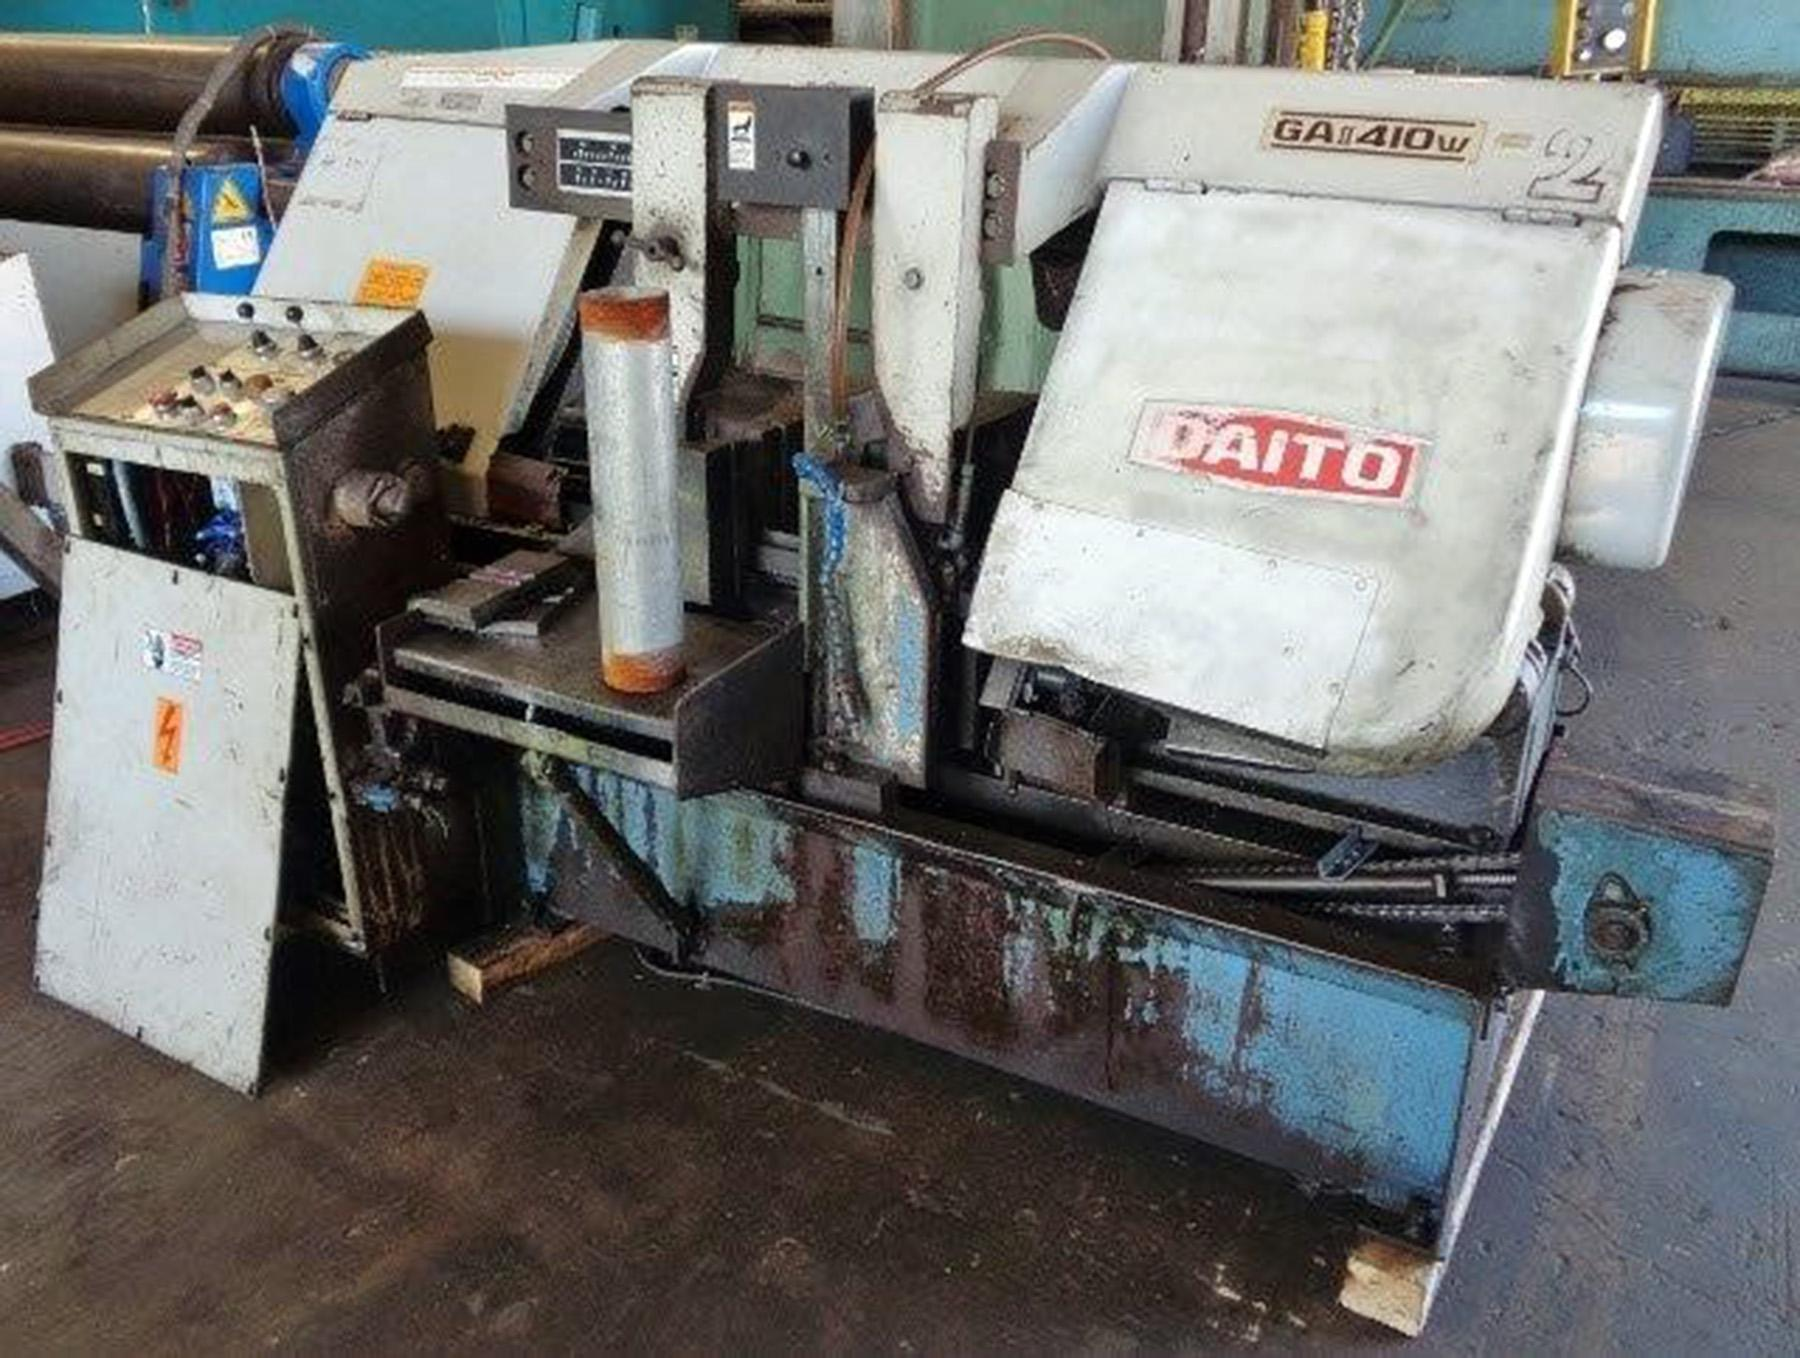 "USED, 15.75"" X 15.75"" DAITO MODEL GA II 410 W PROGRAMMABLE SEMI-AUTOMATIC HORIZONTAL BANDSAW"